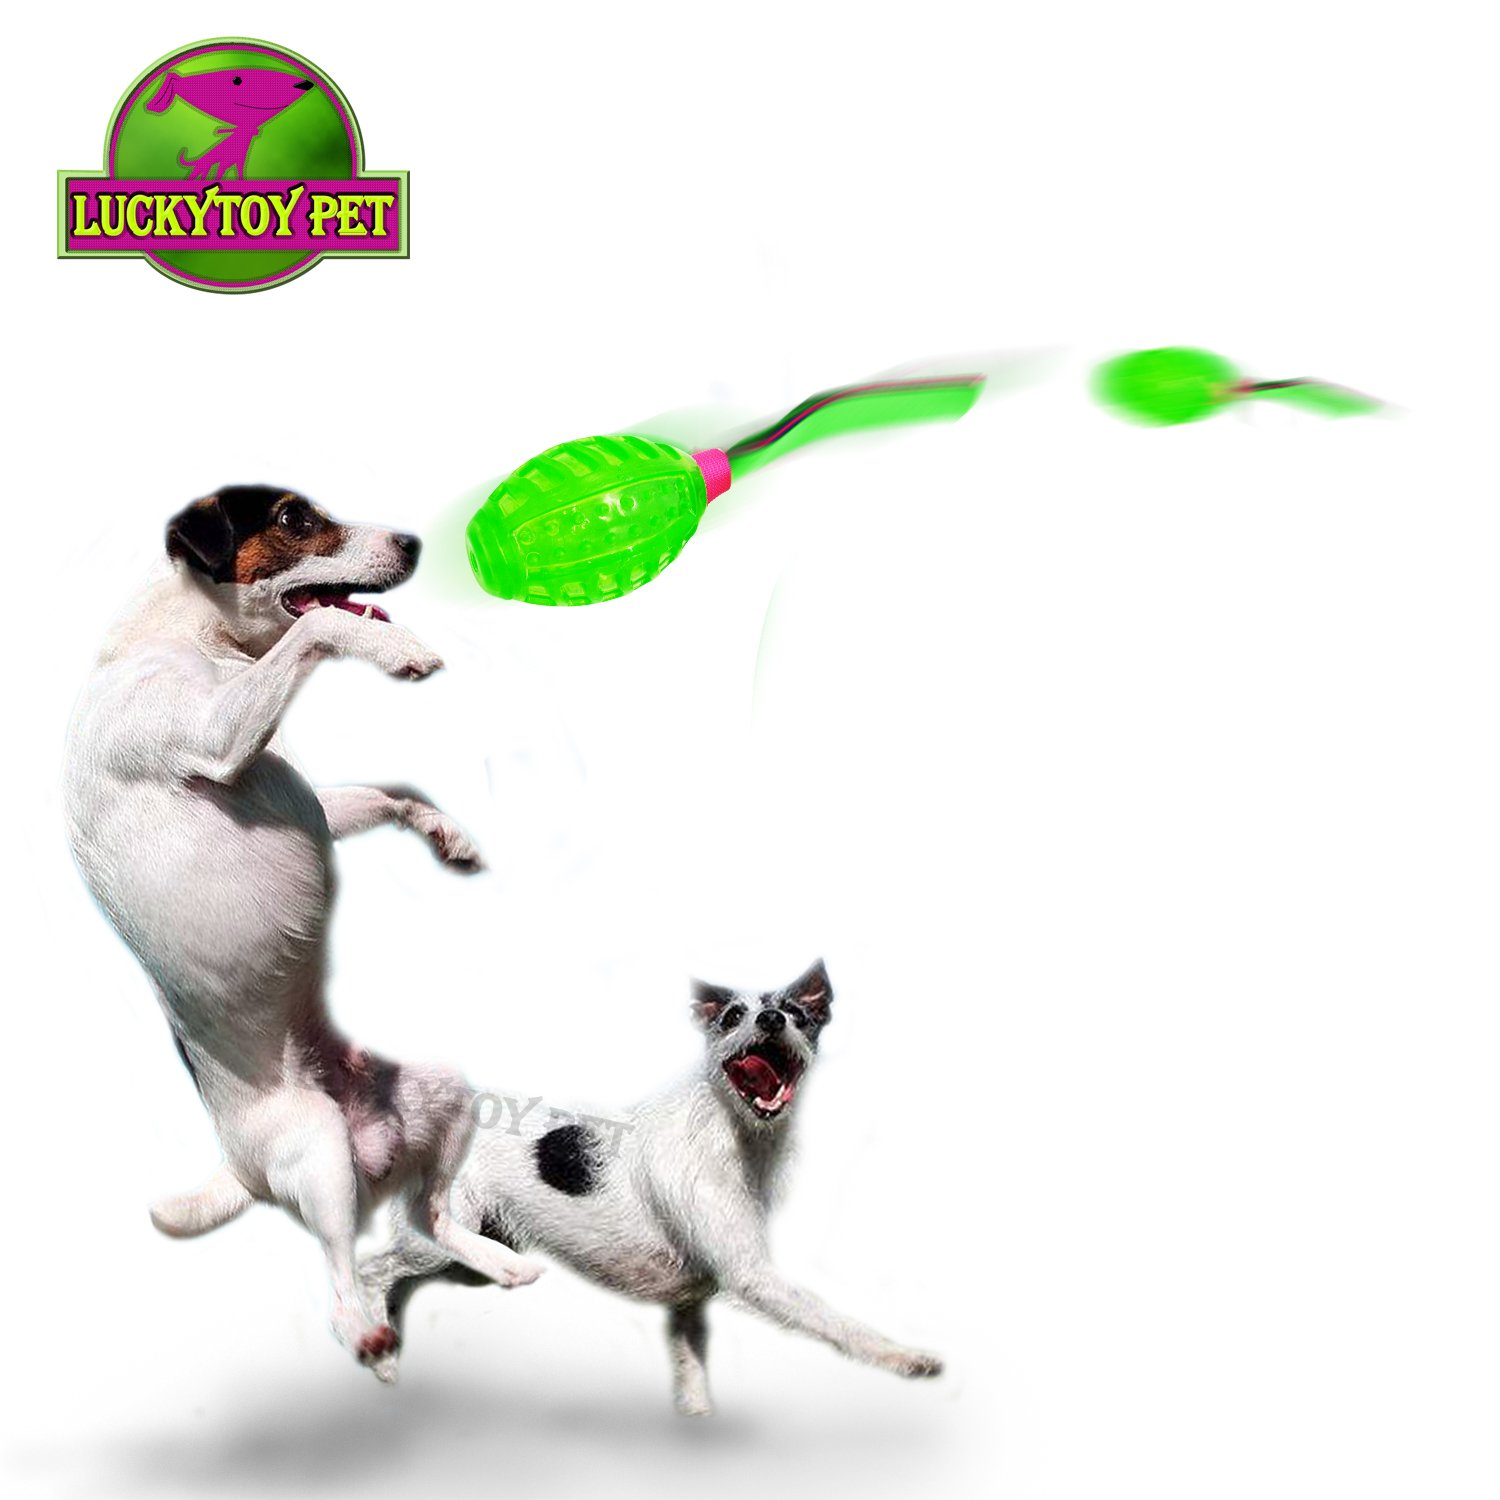 Dog Toys Throwing Rubber Football with Whizzing Sound for Puzzle Training and Playing